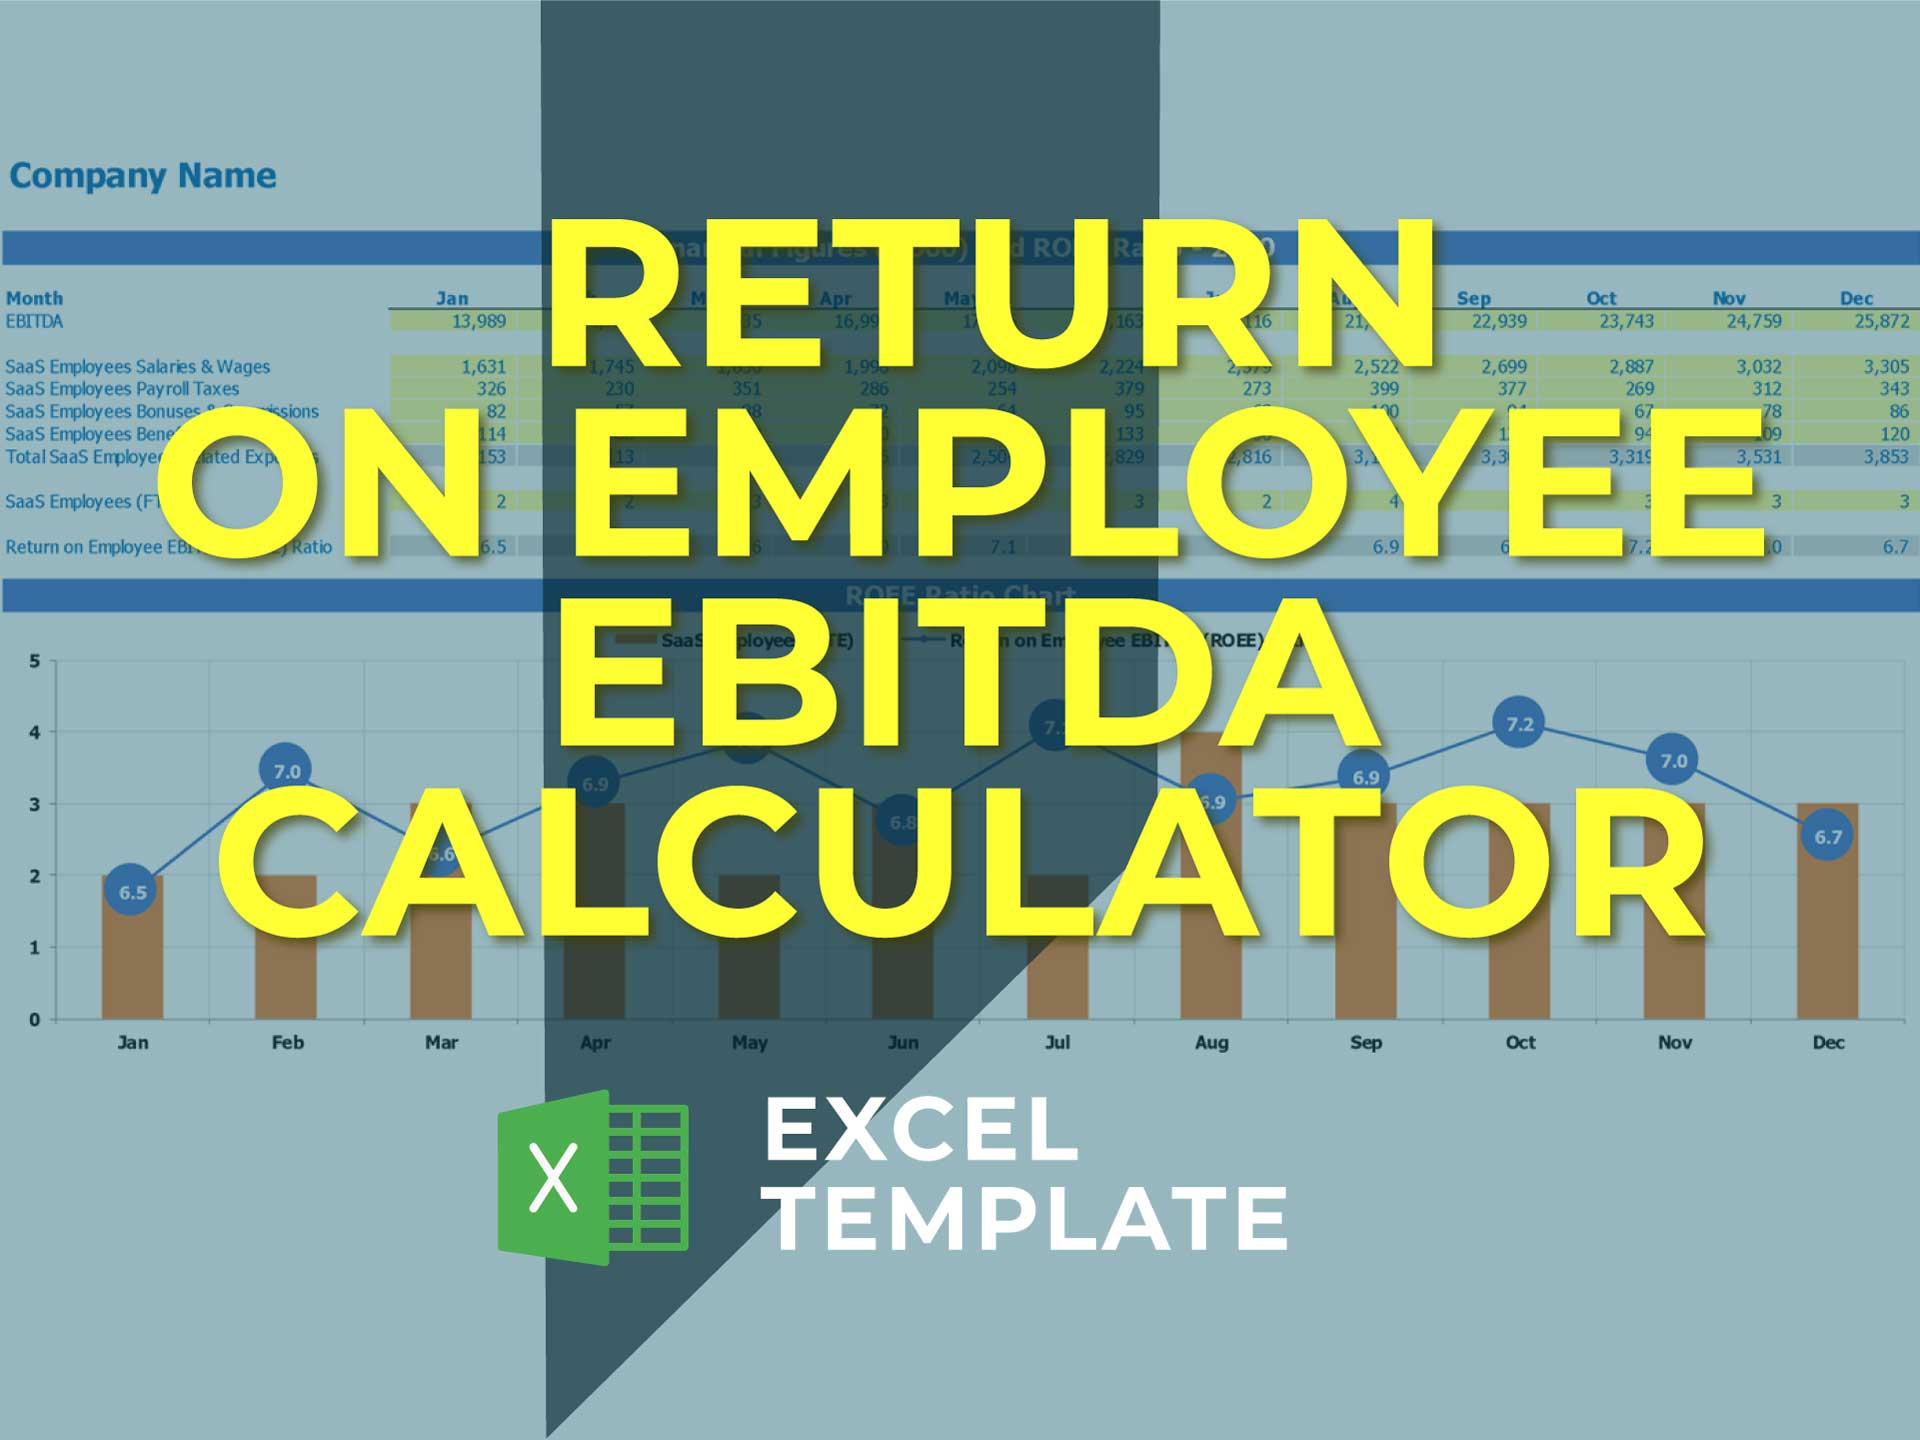 Return On Employee Ebitda Calculator